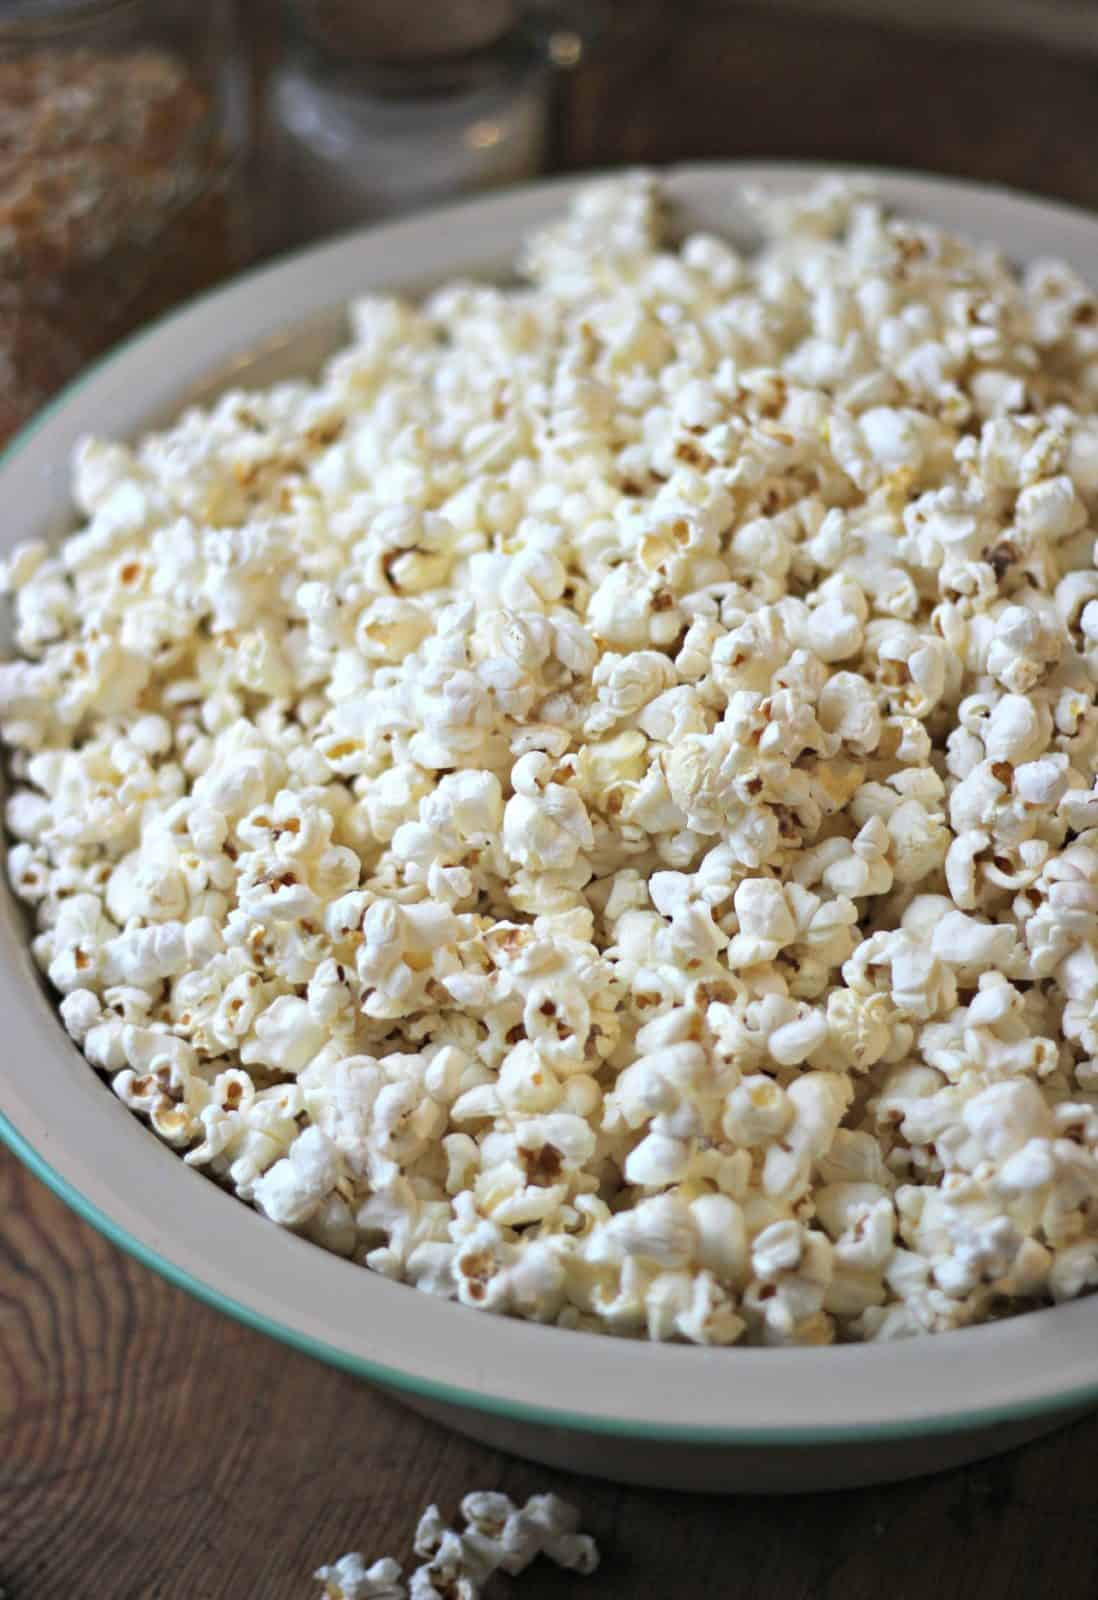 How to make popcorn at home yourself. 1Necessary ordinary corn beans or cooked And how to make popcorn